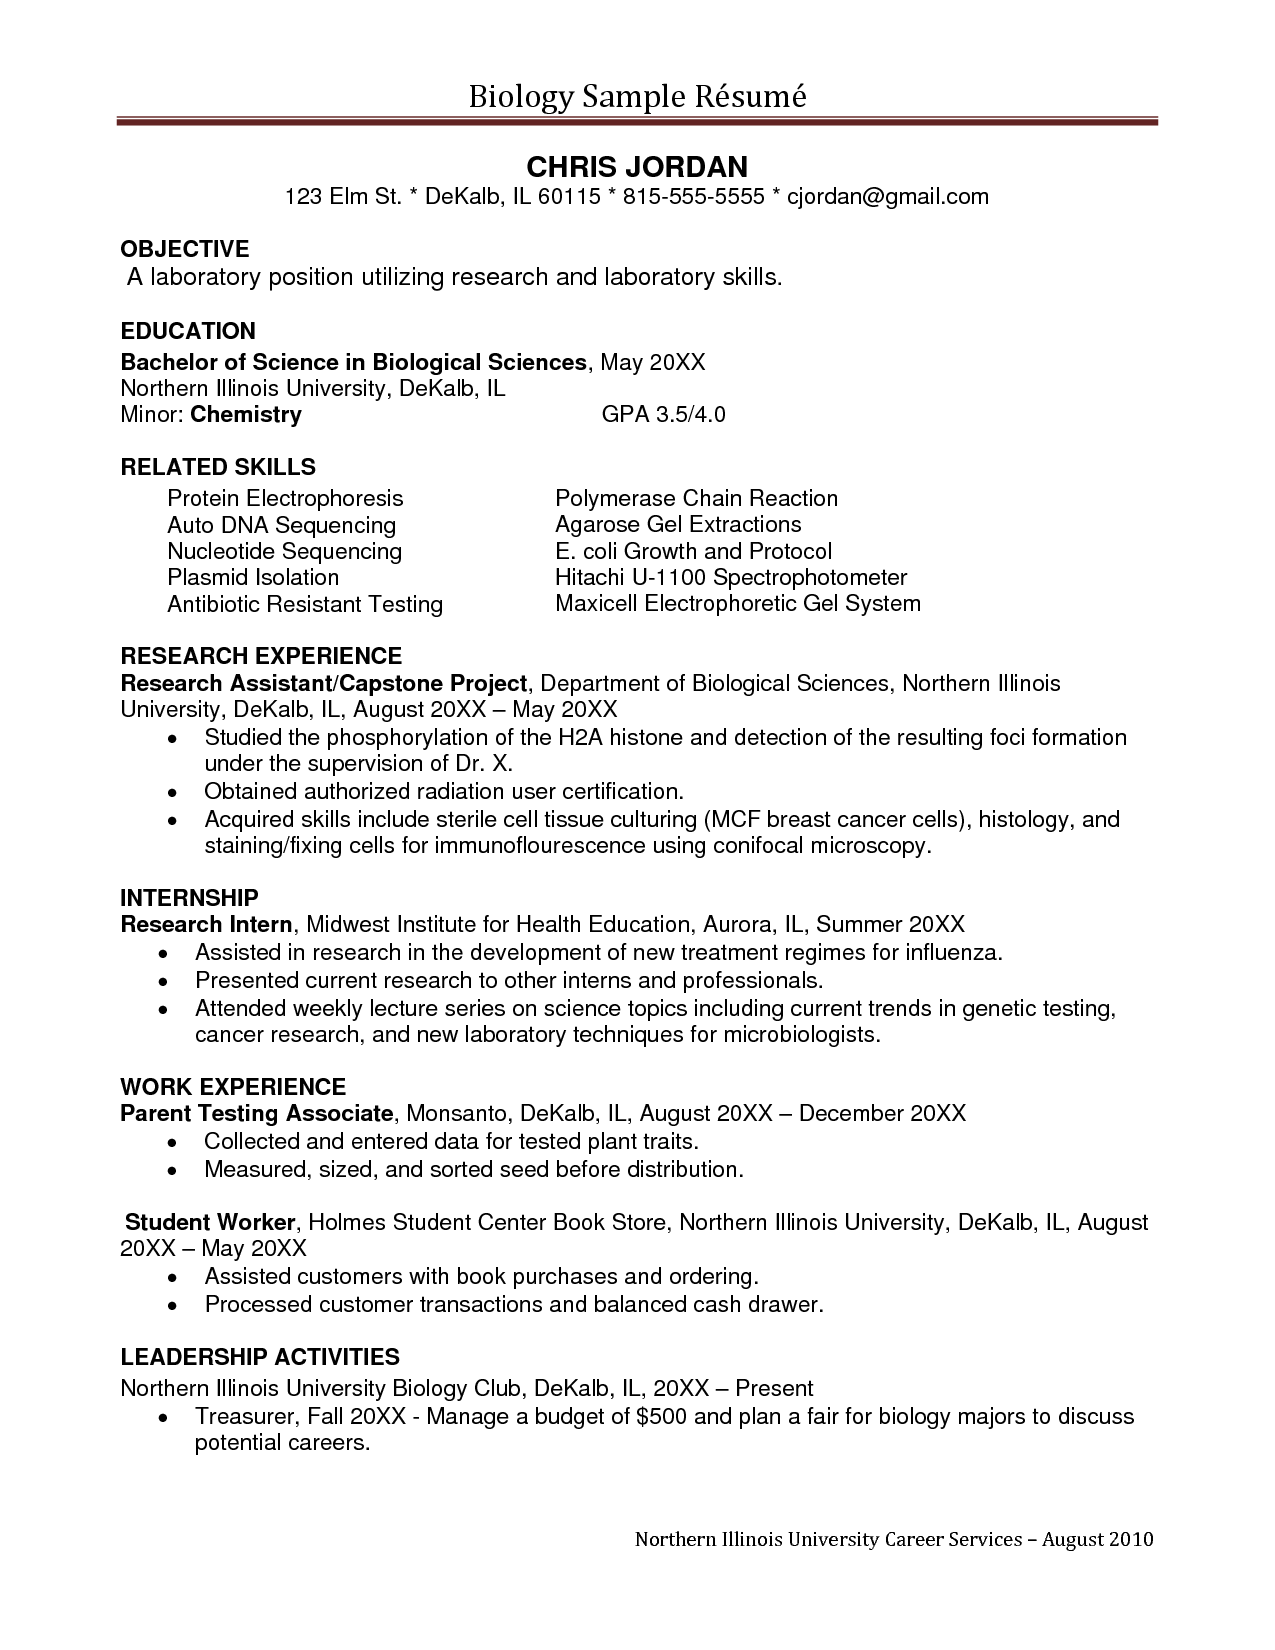 Medical Assistant Resume Sample Undergraduate Research Assistant Resume Sampleĺ